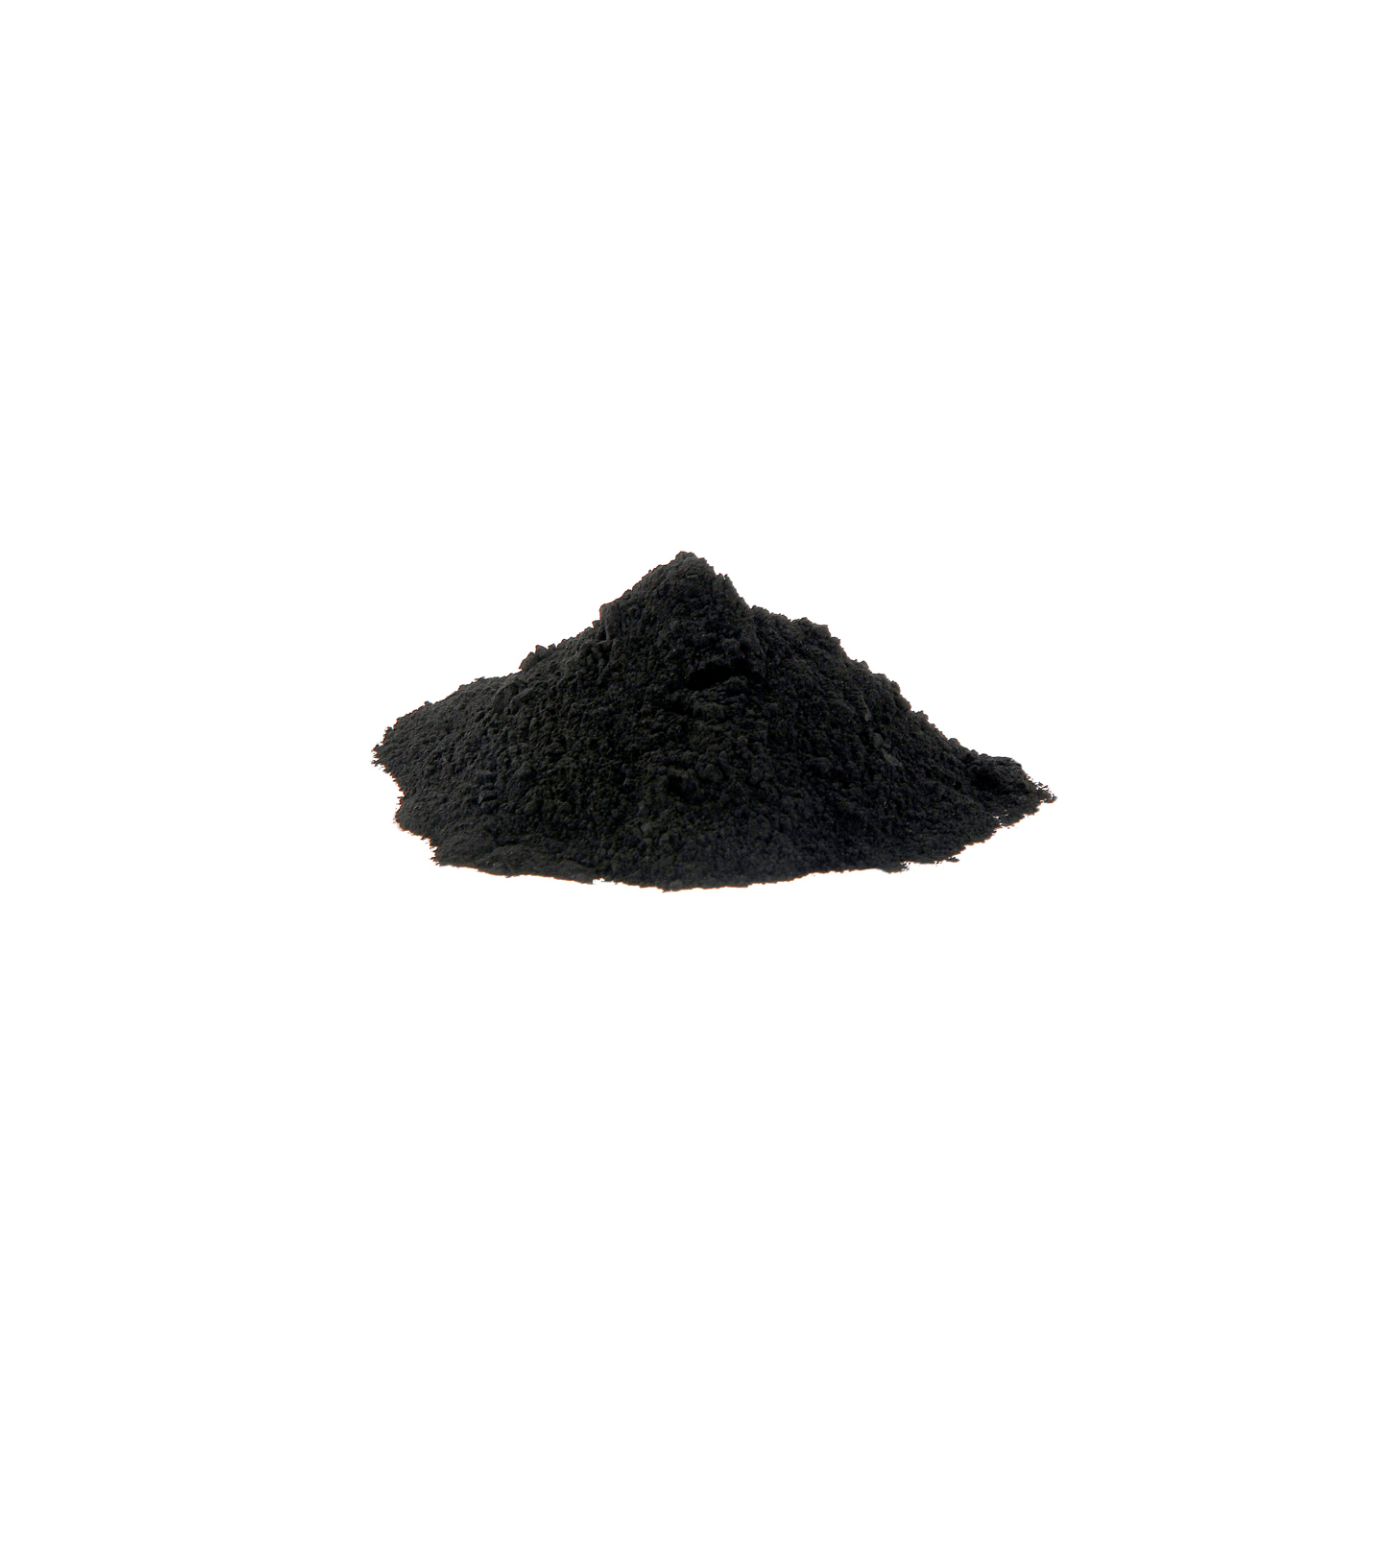 Activated Charcoal Powder- For Rejuvenating and Whitening